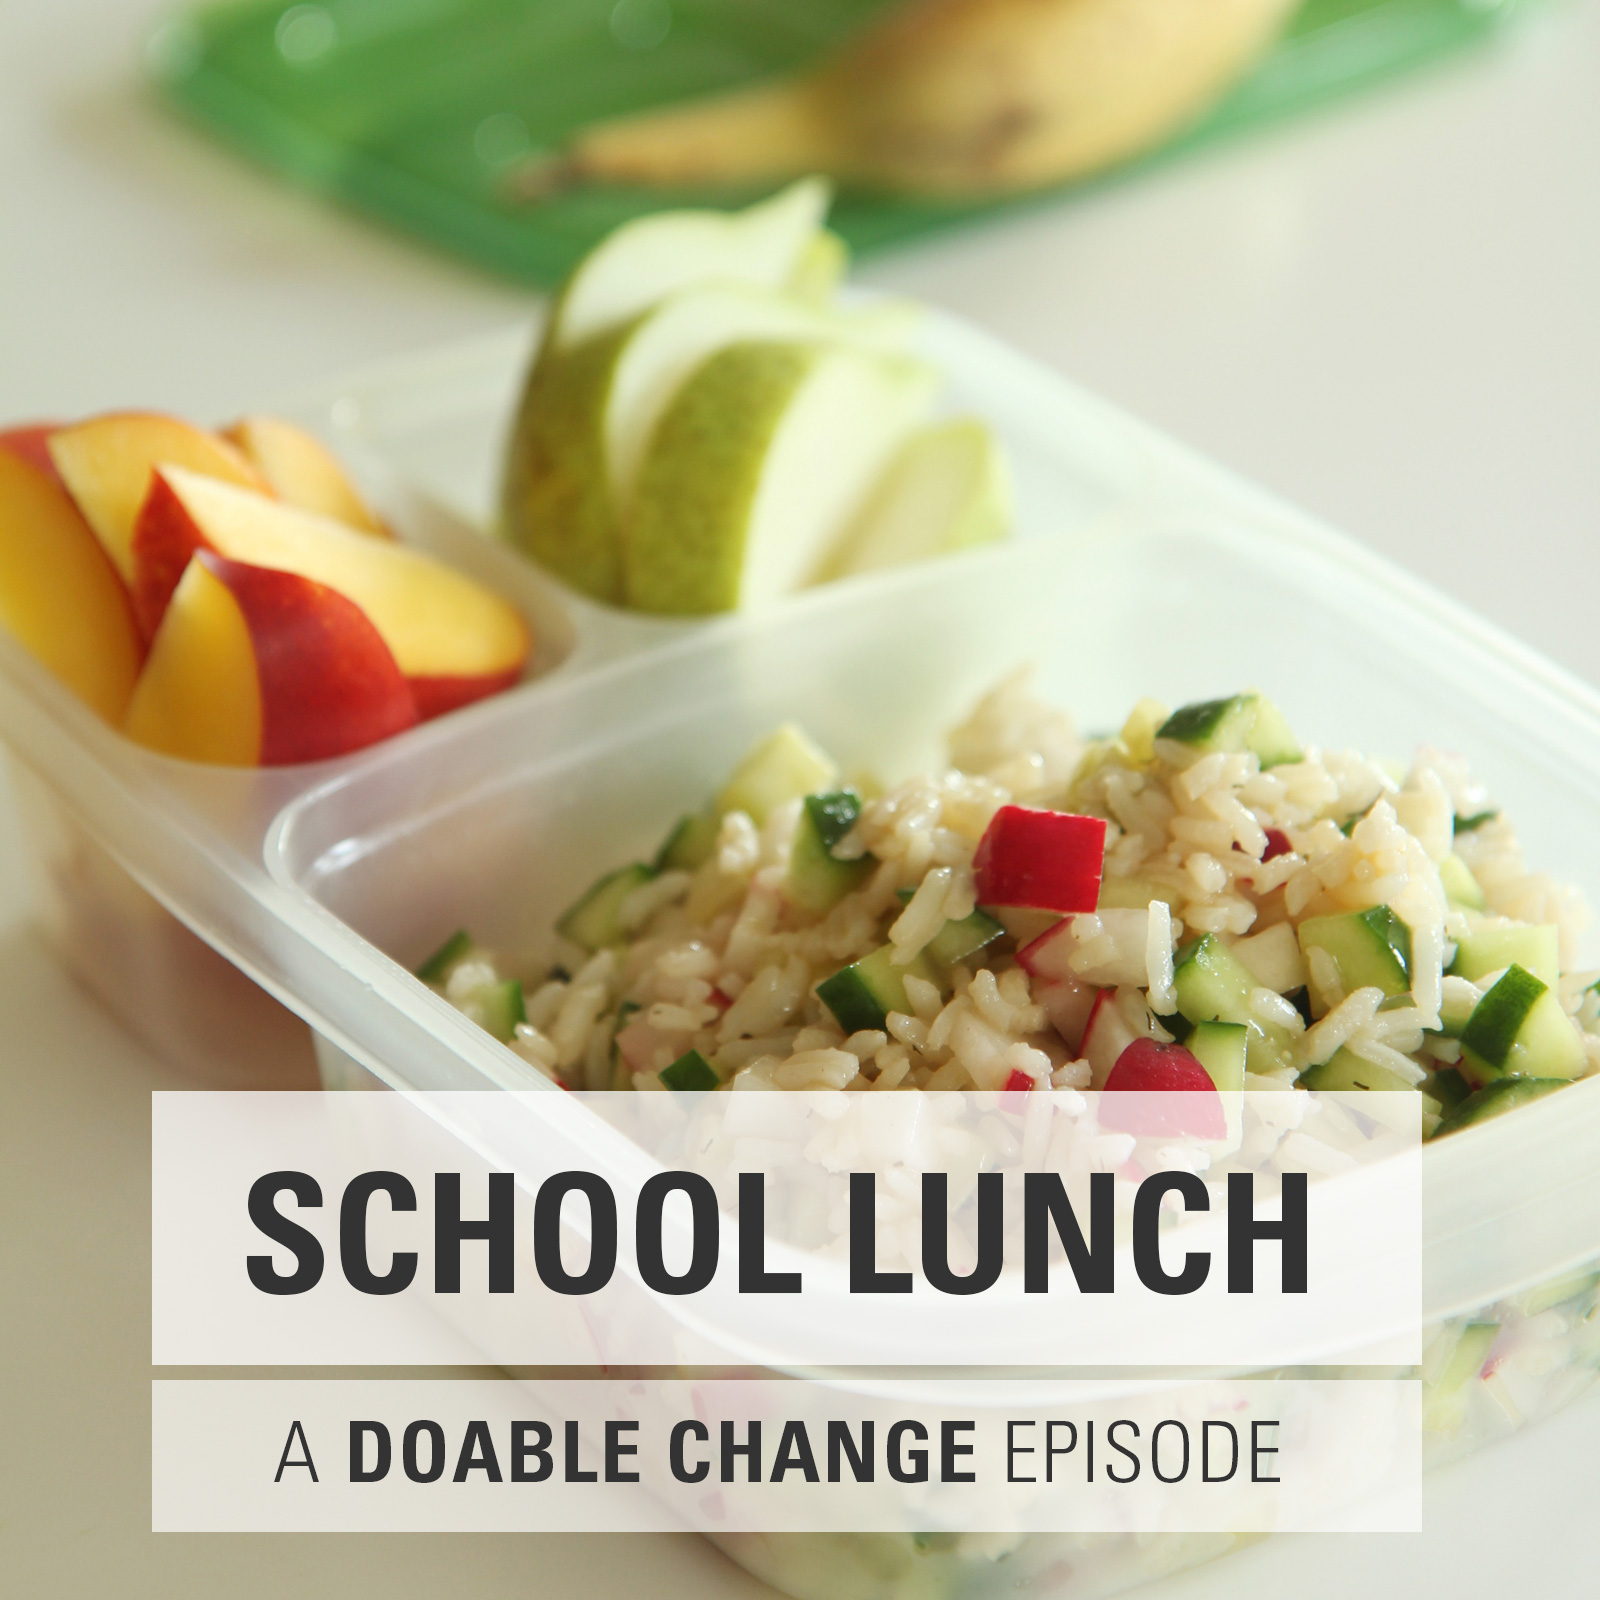 Doable Change: Packing Healthy School Lunches